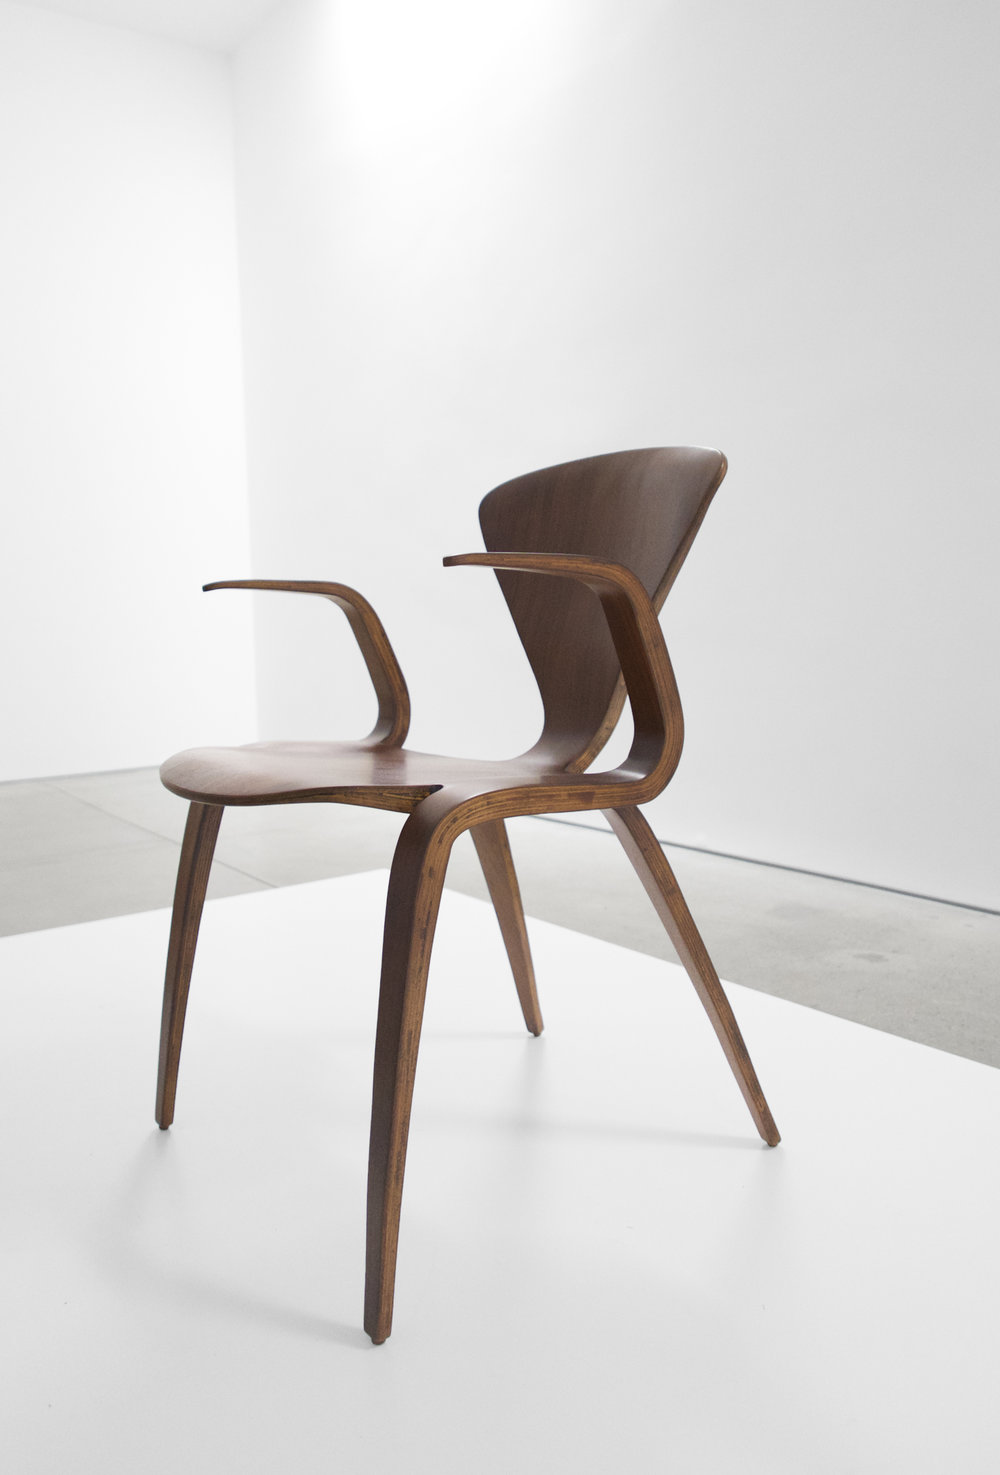 5. Norman Cherner, Rare Prototype Chair, c. 1950, walnut, 30.75H x 23W x 23D inches.jpg